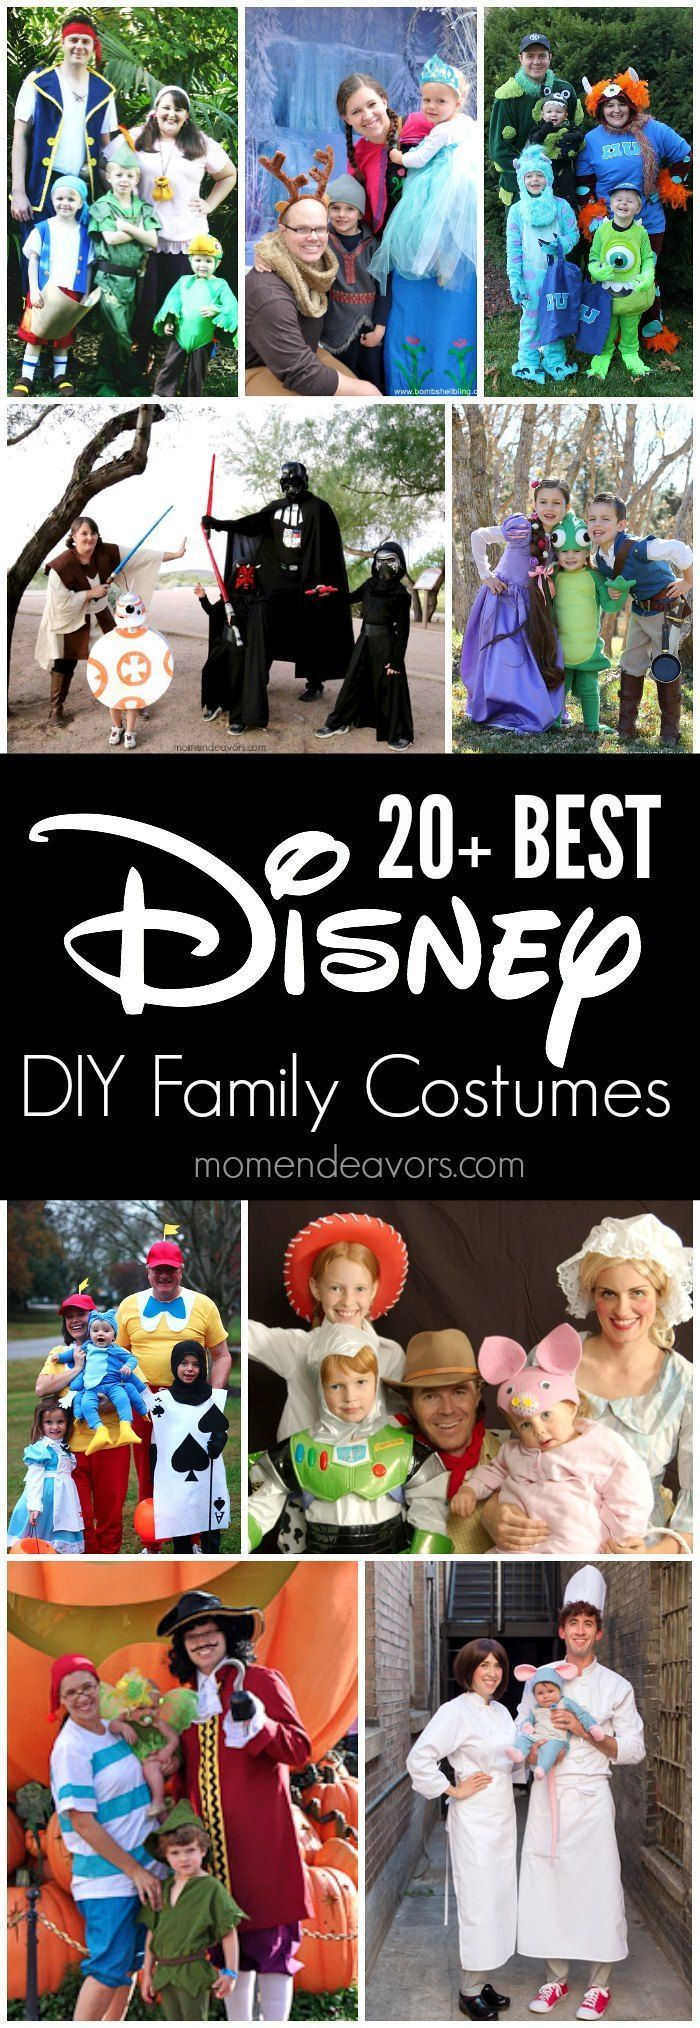 446 best Halloween Crafts & Party Ideas images on Pinterest